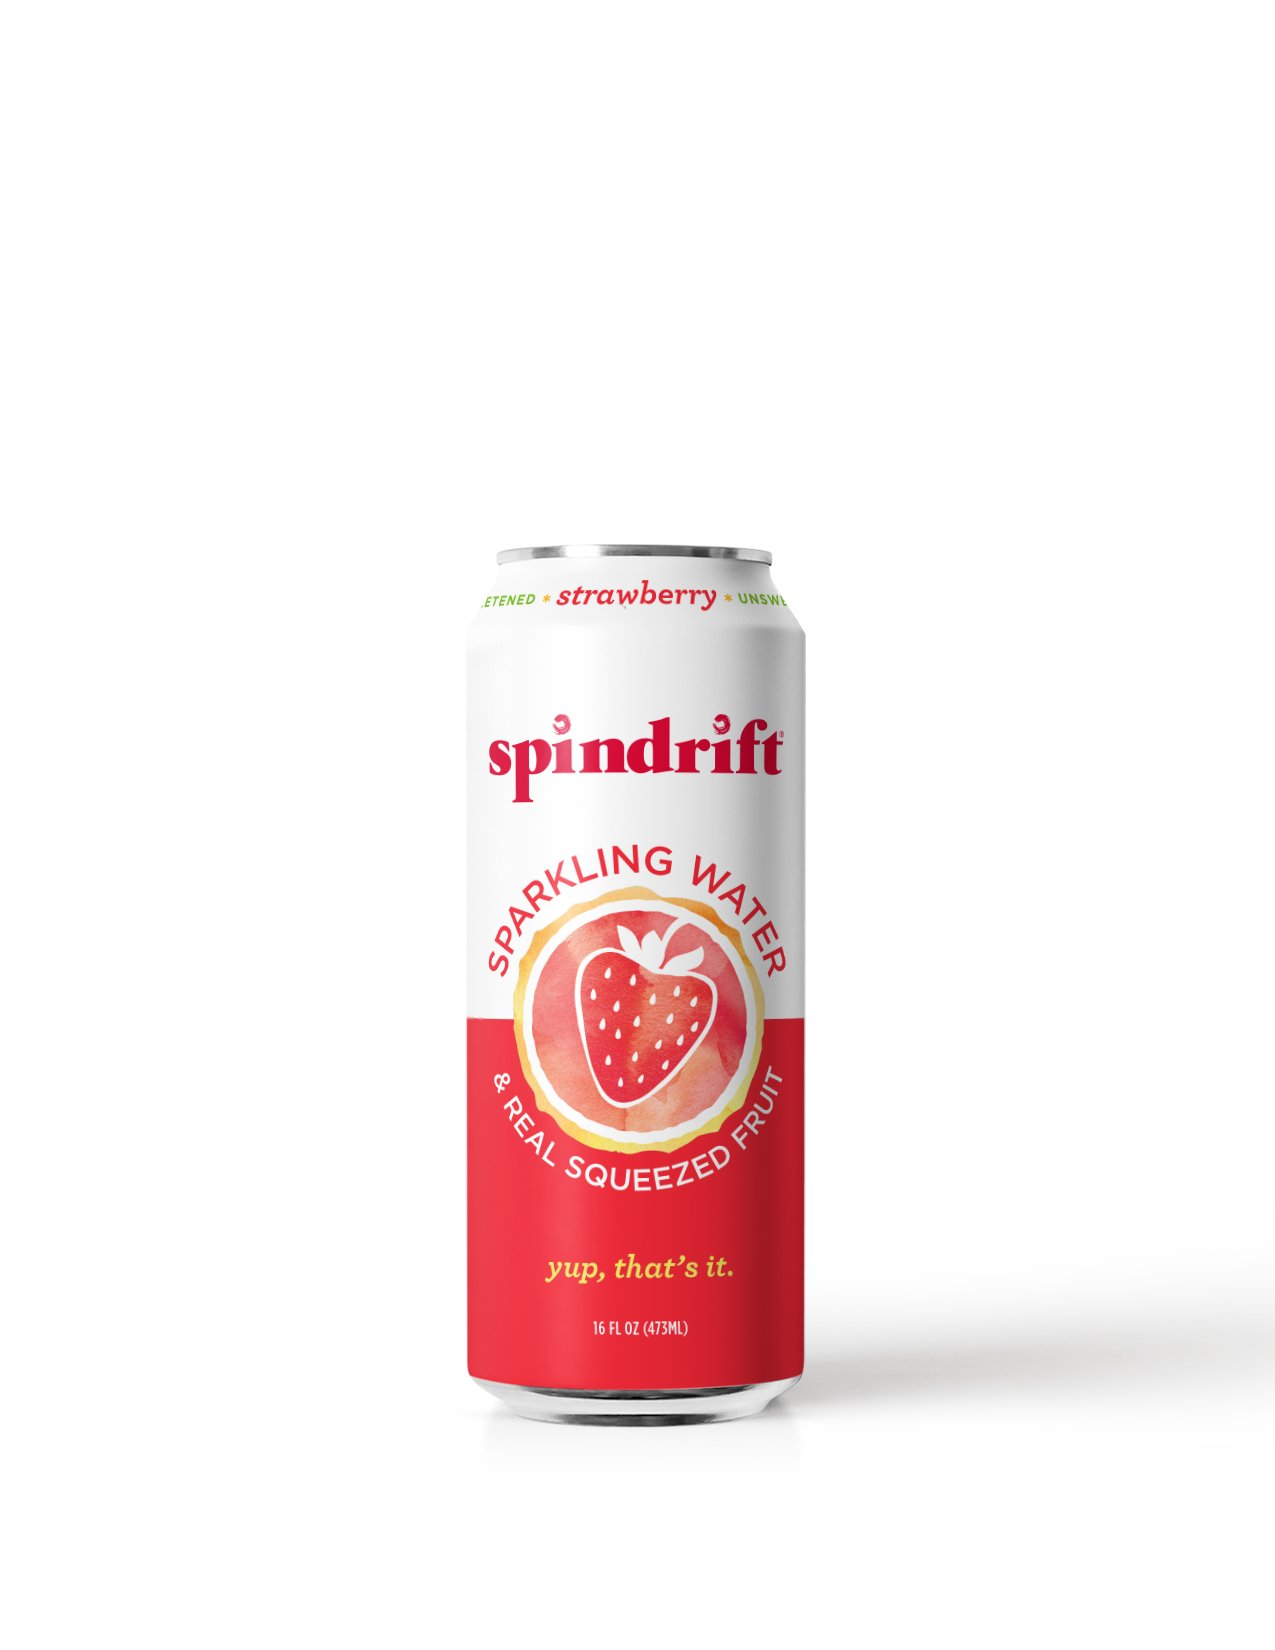 Spindrift Strawberry Sparkling Water, 16-Fluid-Ounce Cans, Pack of 12